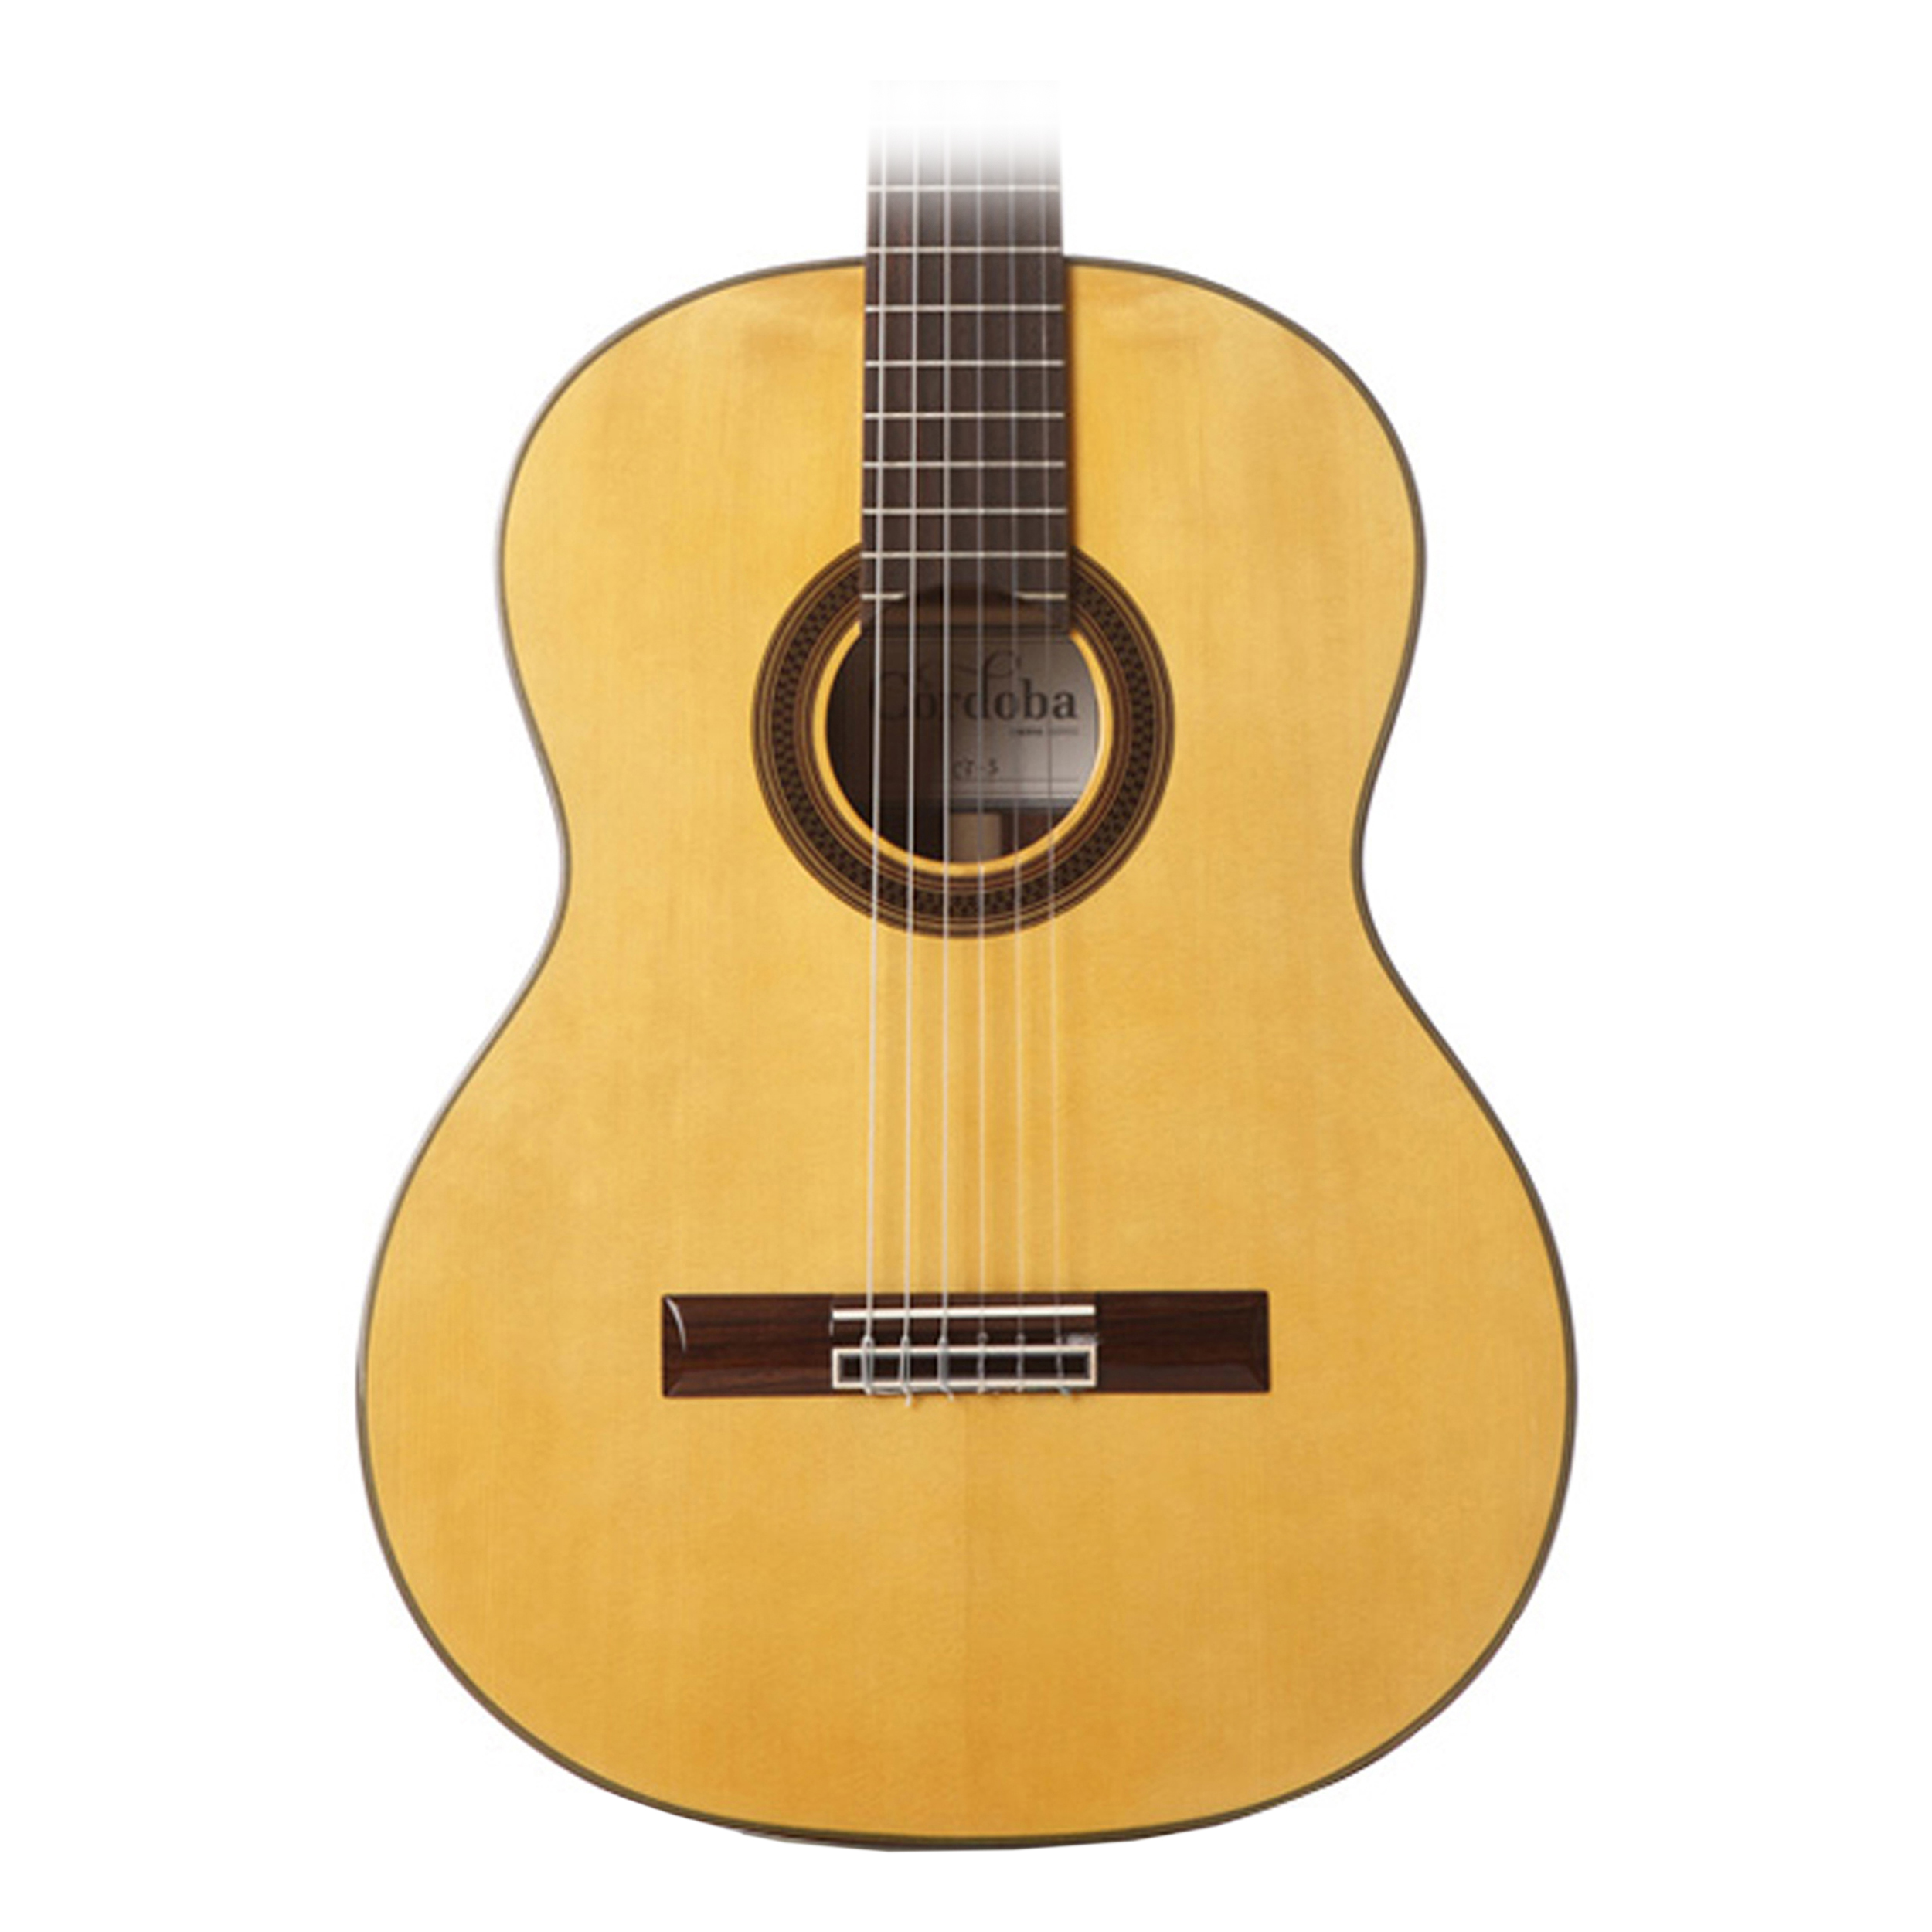 Cordoba C7s Classical Acoustic Guitar Spruce Top in Natural Finish